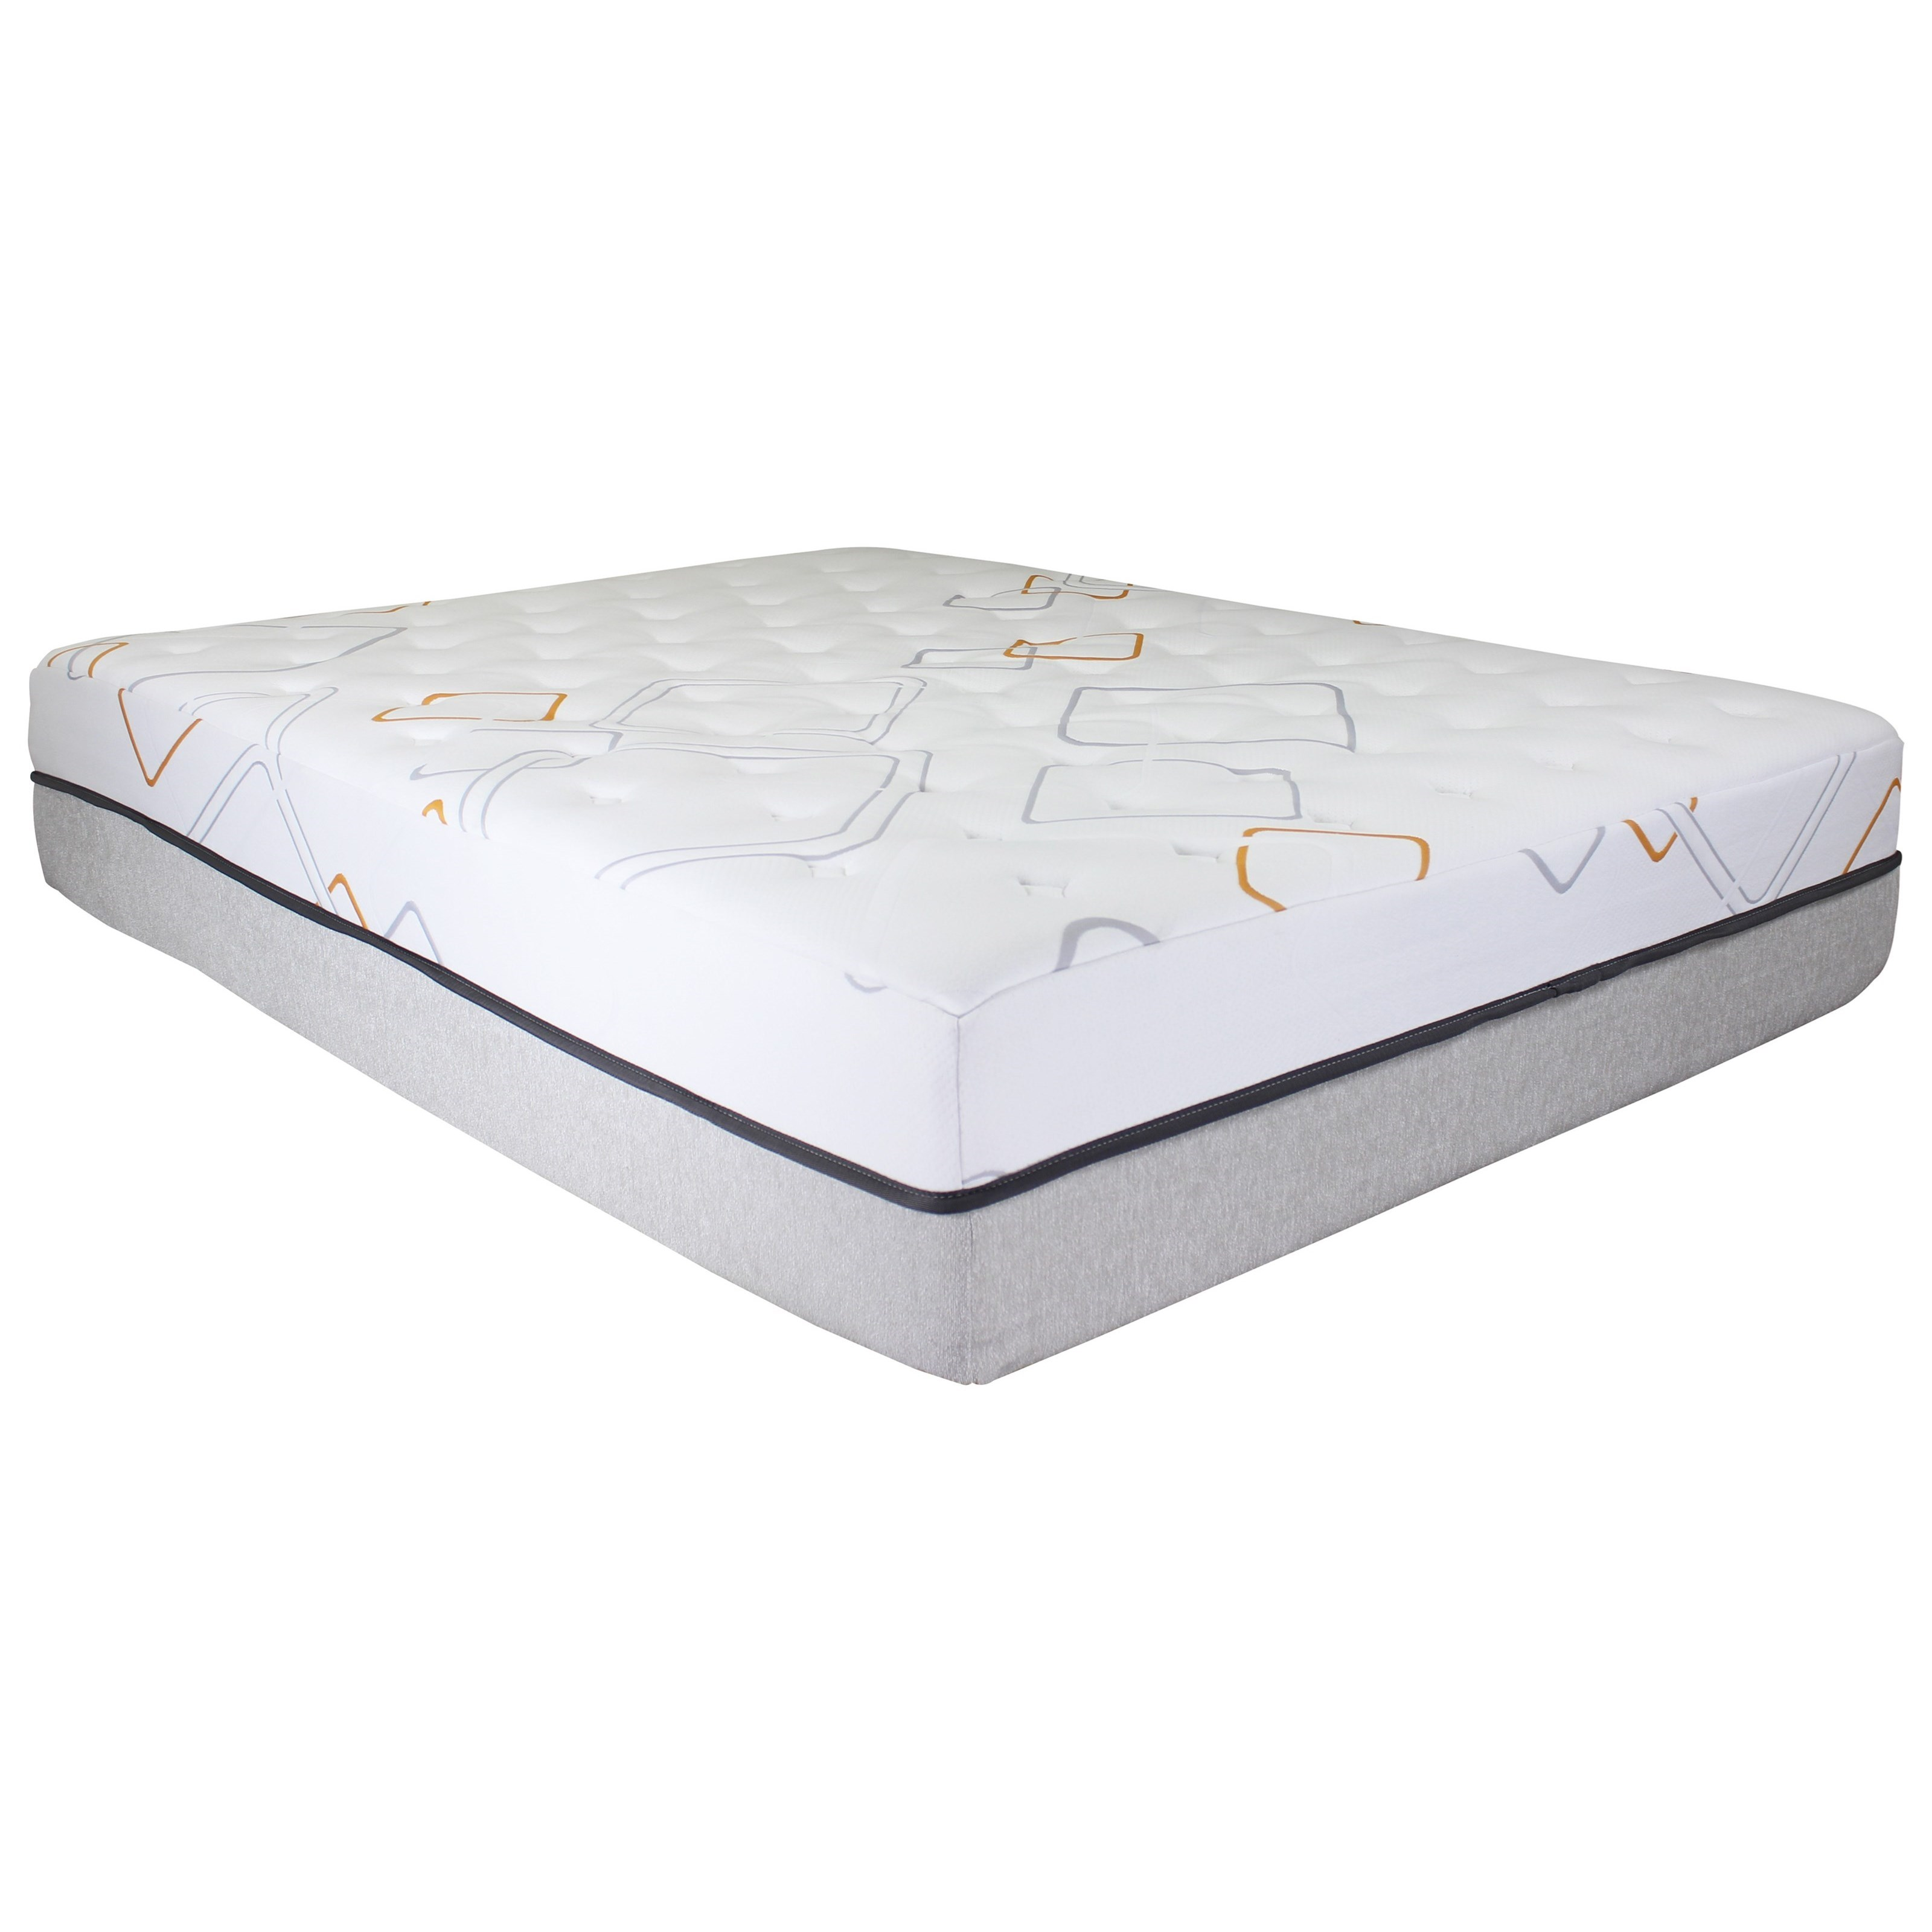 single dormeo octaspring hybrid mattress